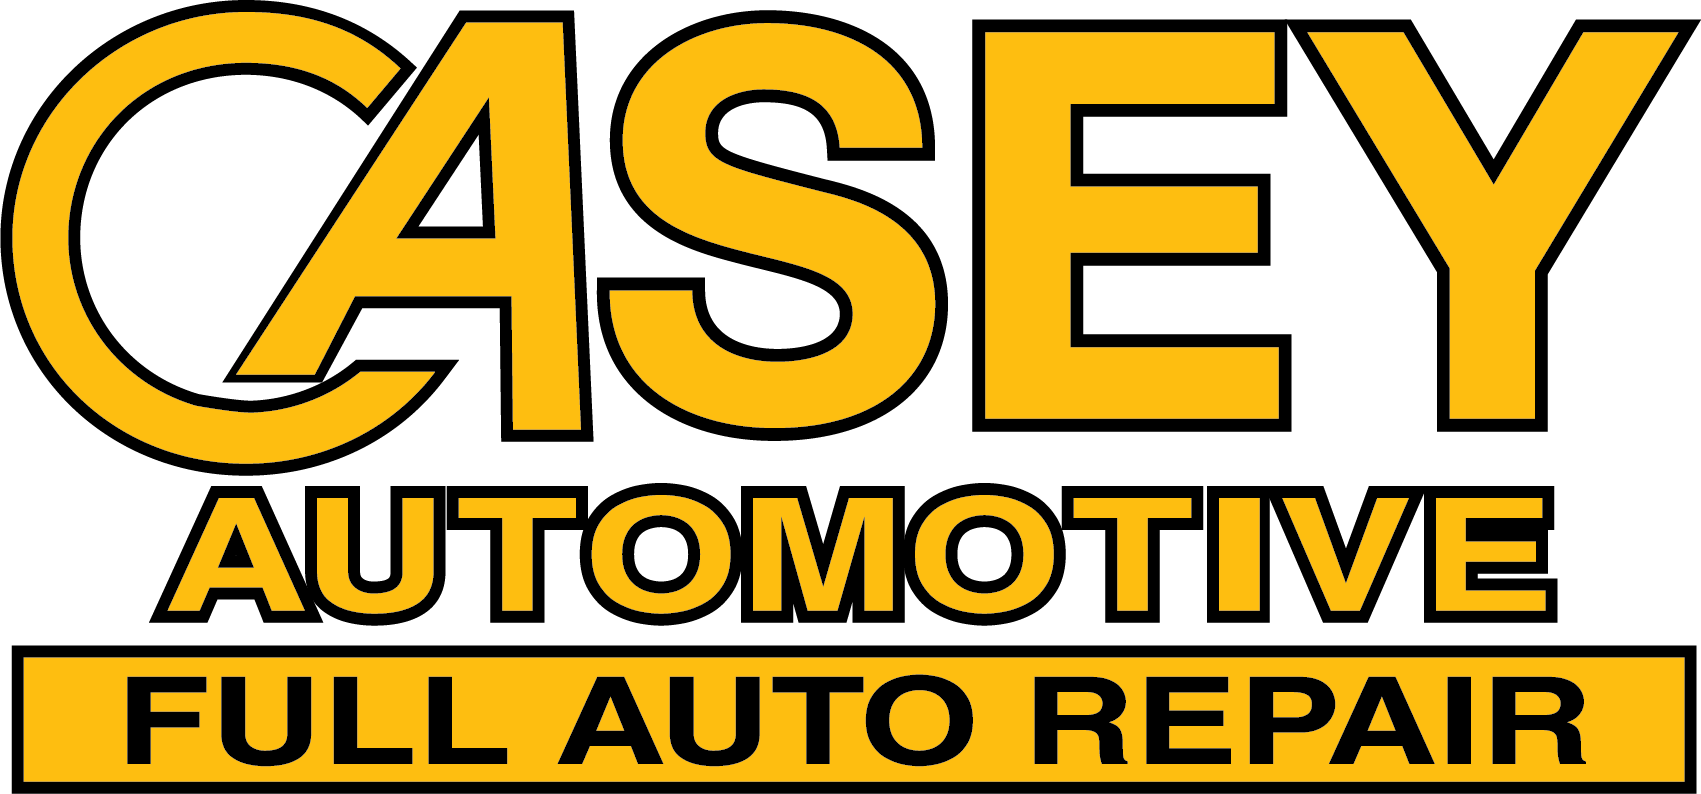 Casey Automotive